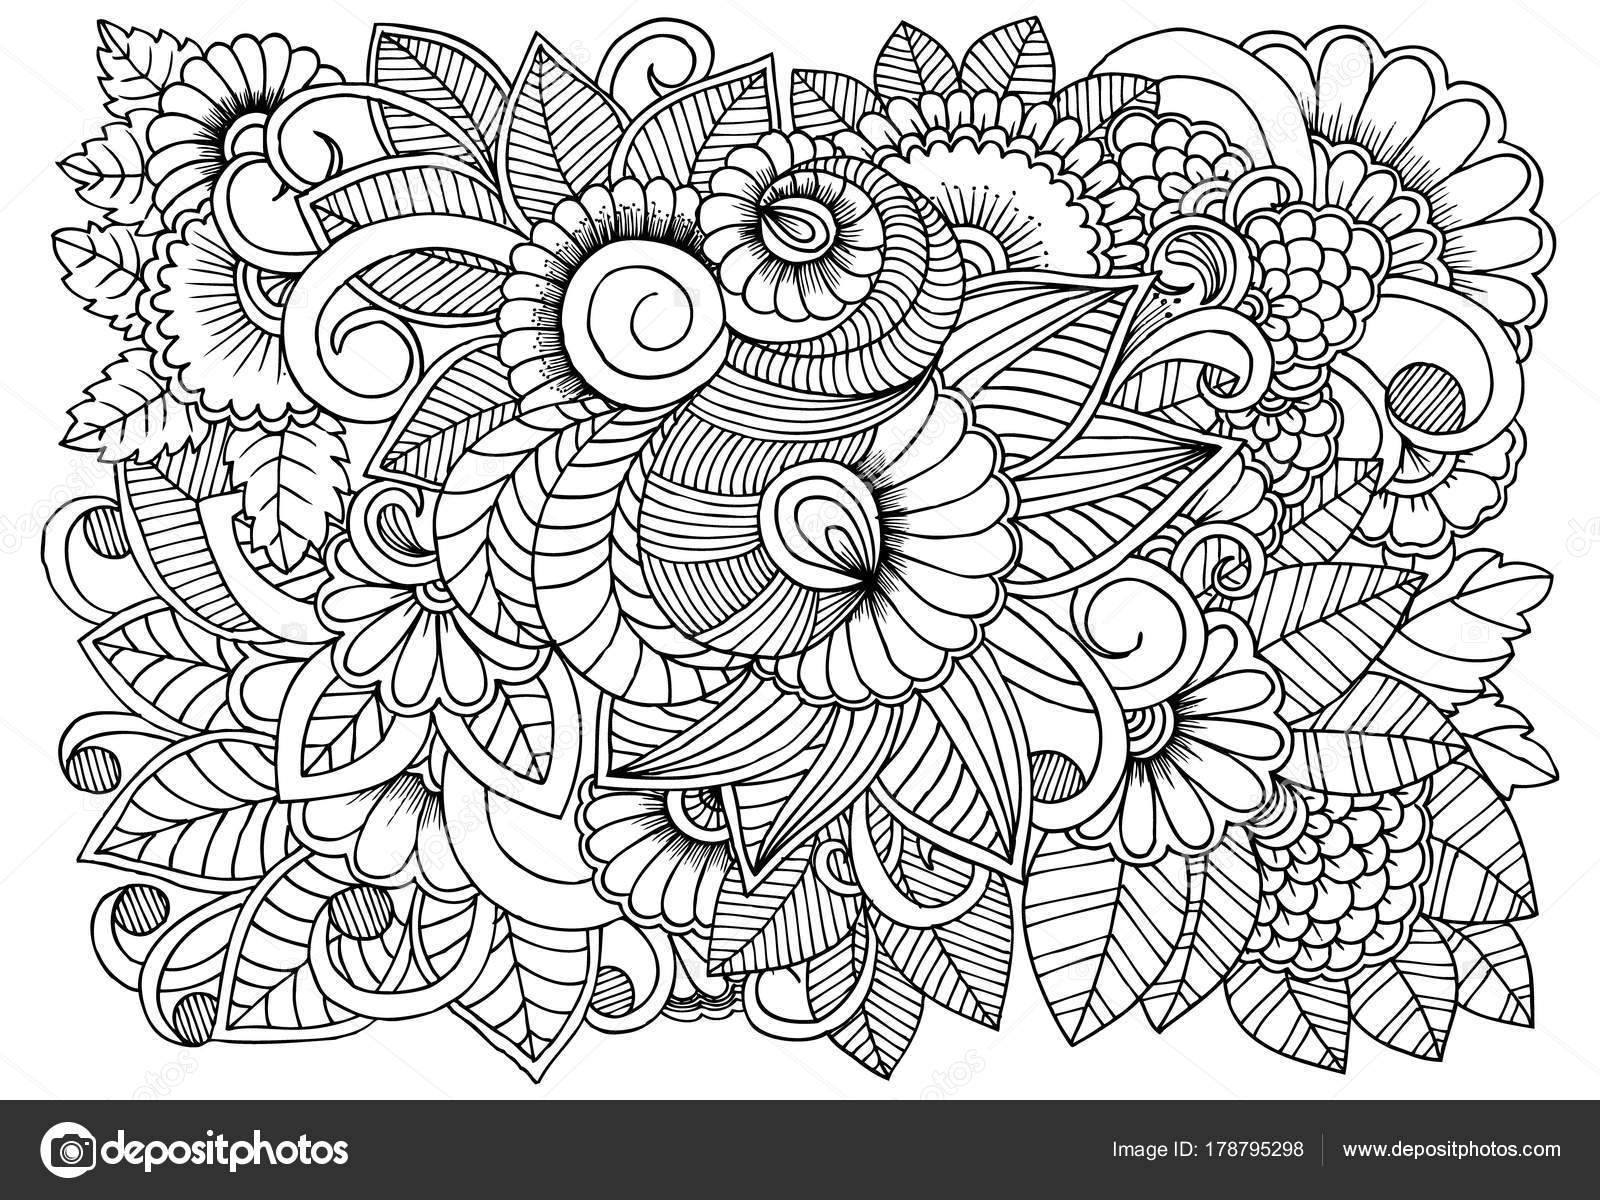 Black And White Flower Pattern For Coloring Doodle Floral Drawi